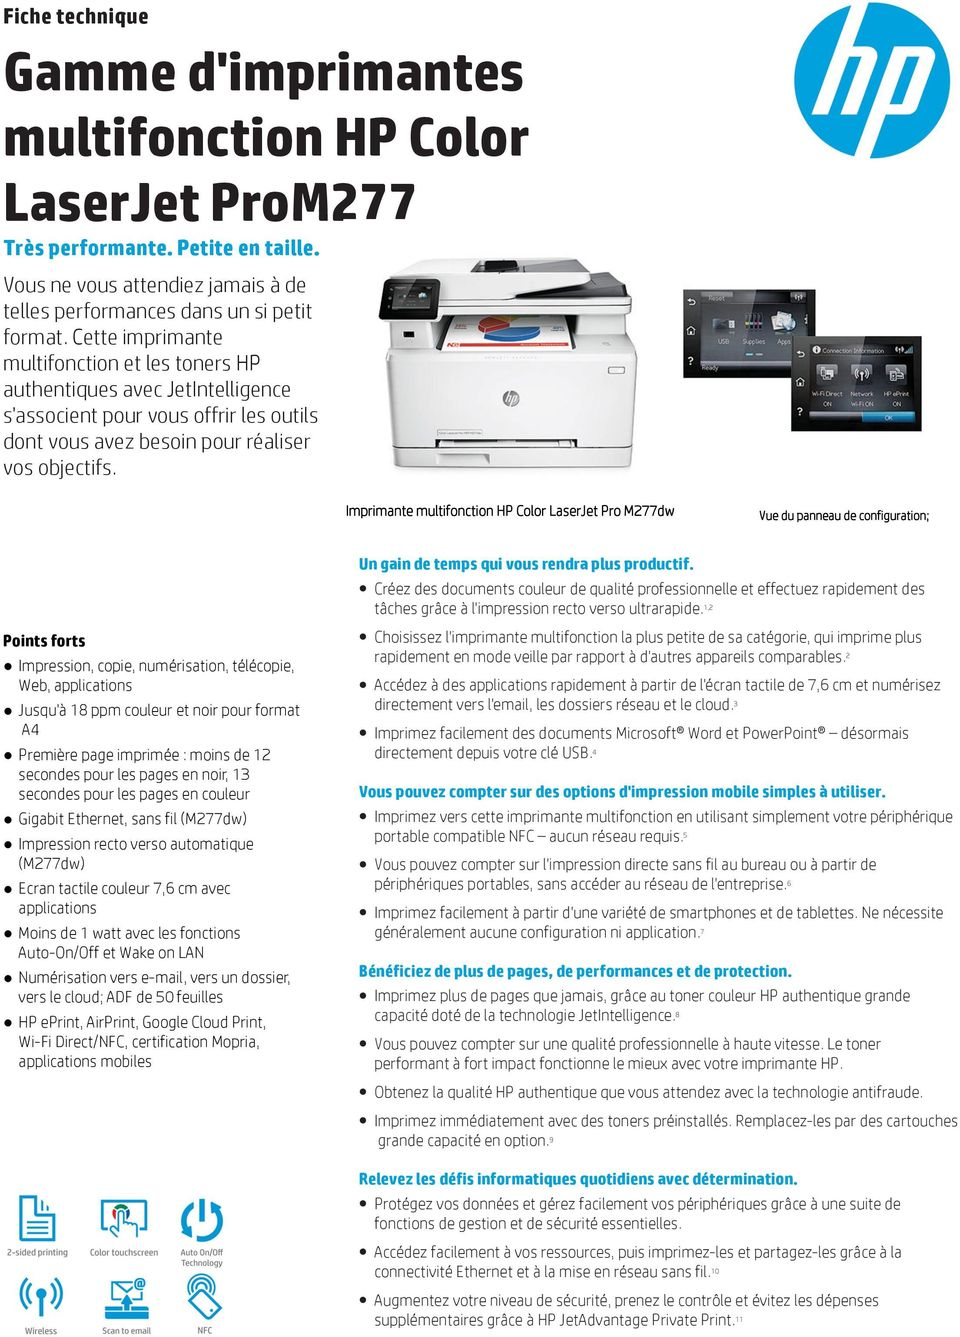 Imprimante multifonction HP Color LaserJet Pro M277dw Vue du panneau de configuration; Points forts Impression, copie, numérisation, télécopie, Web, applications Jusqu'à 18 ppm couleur et noir pour